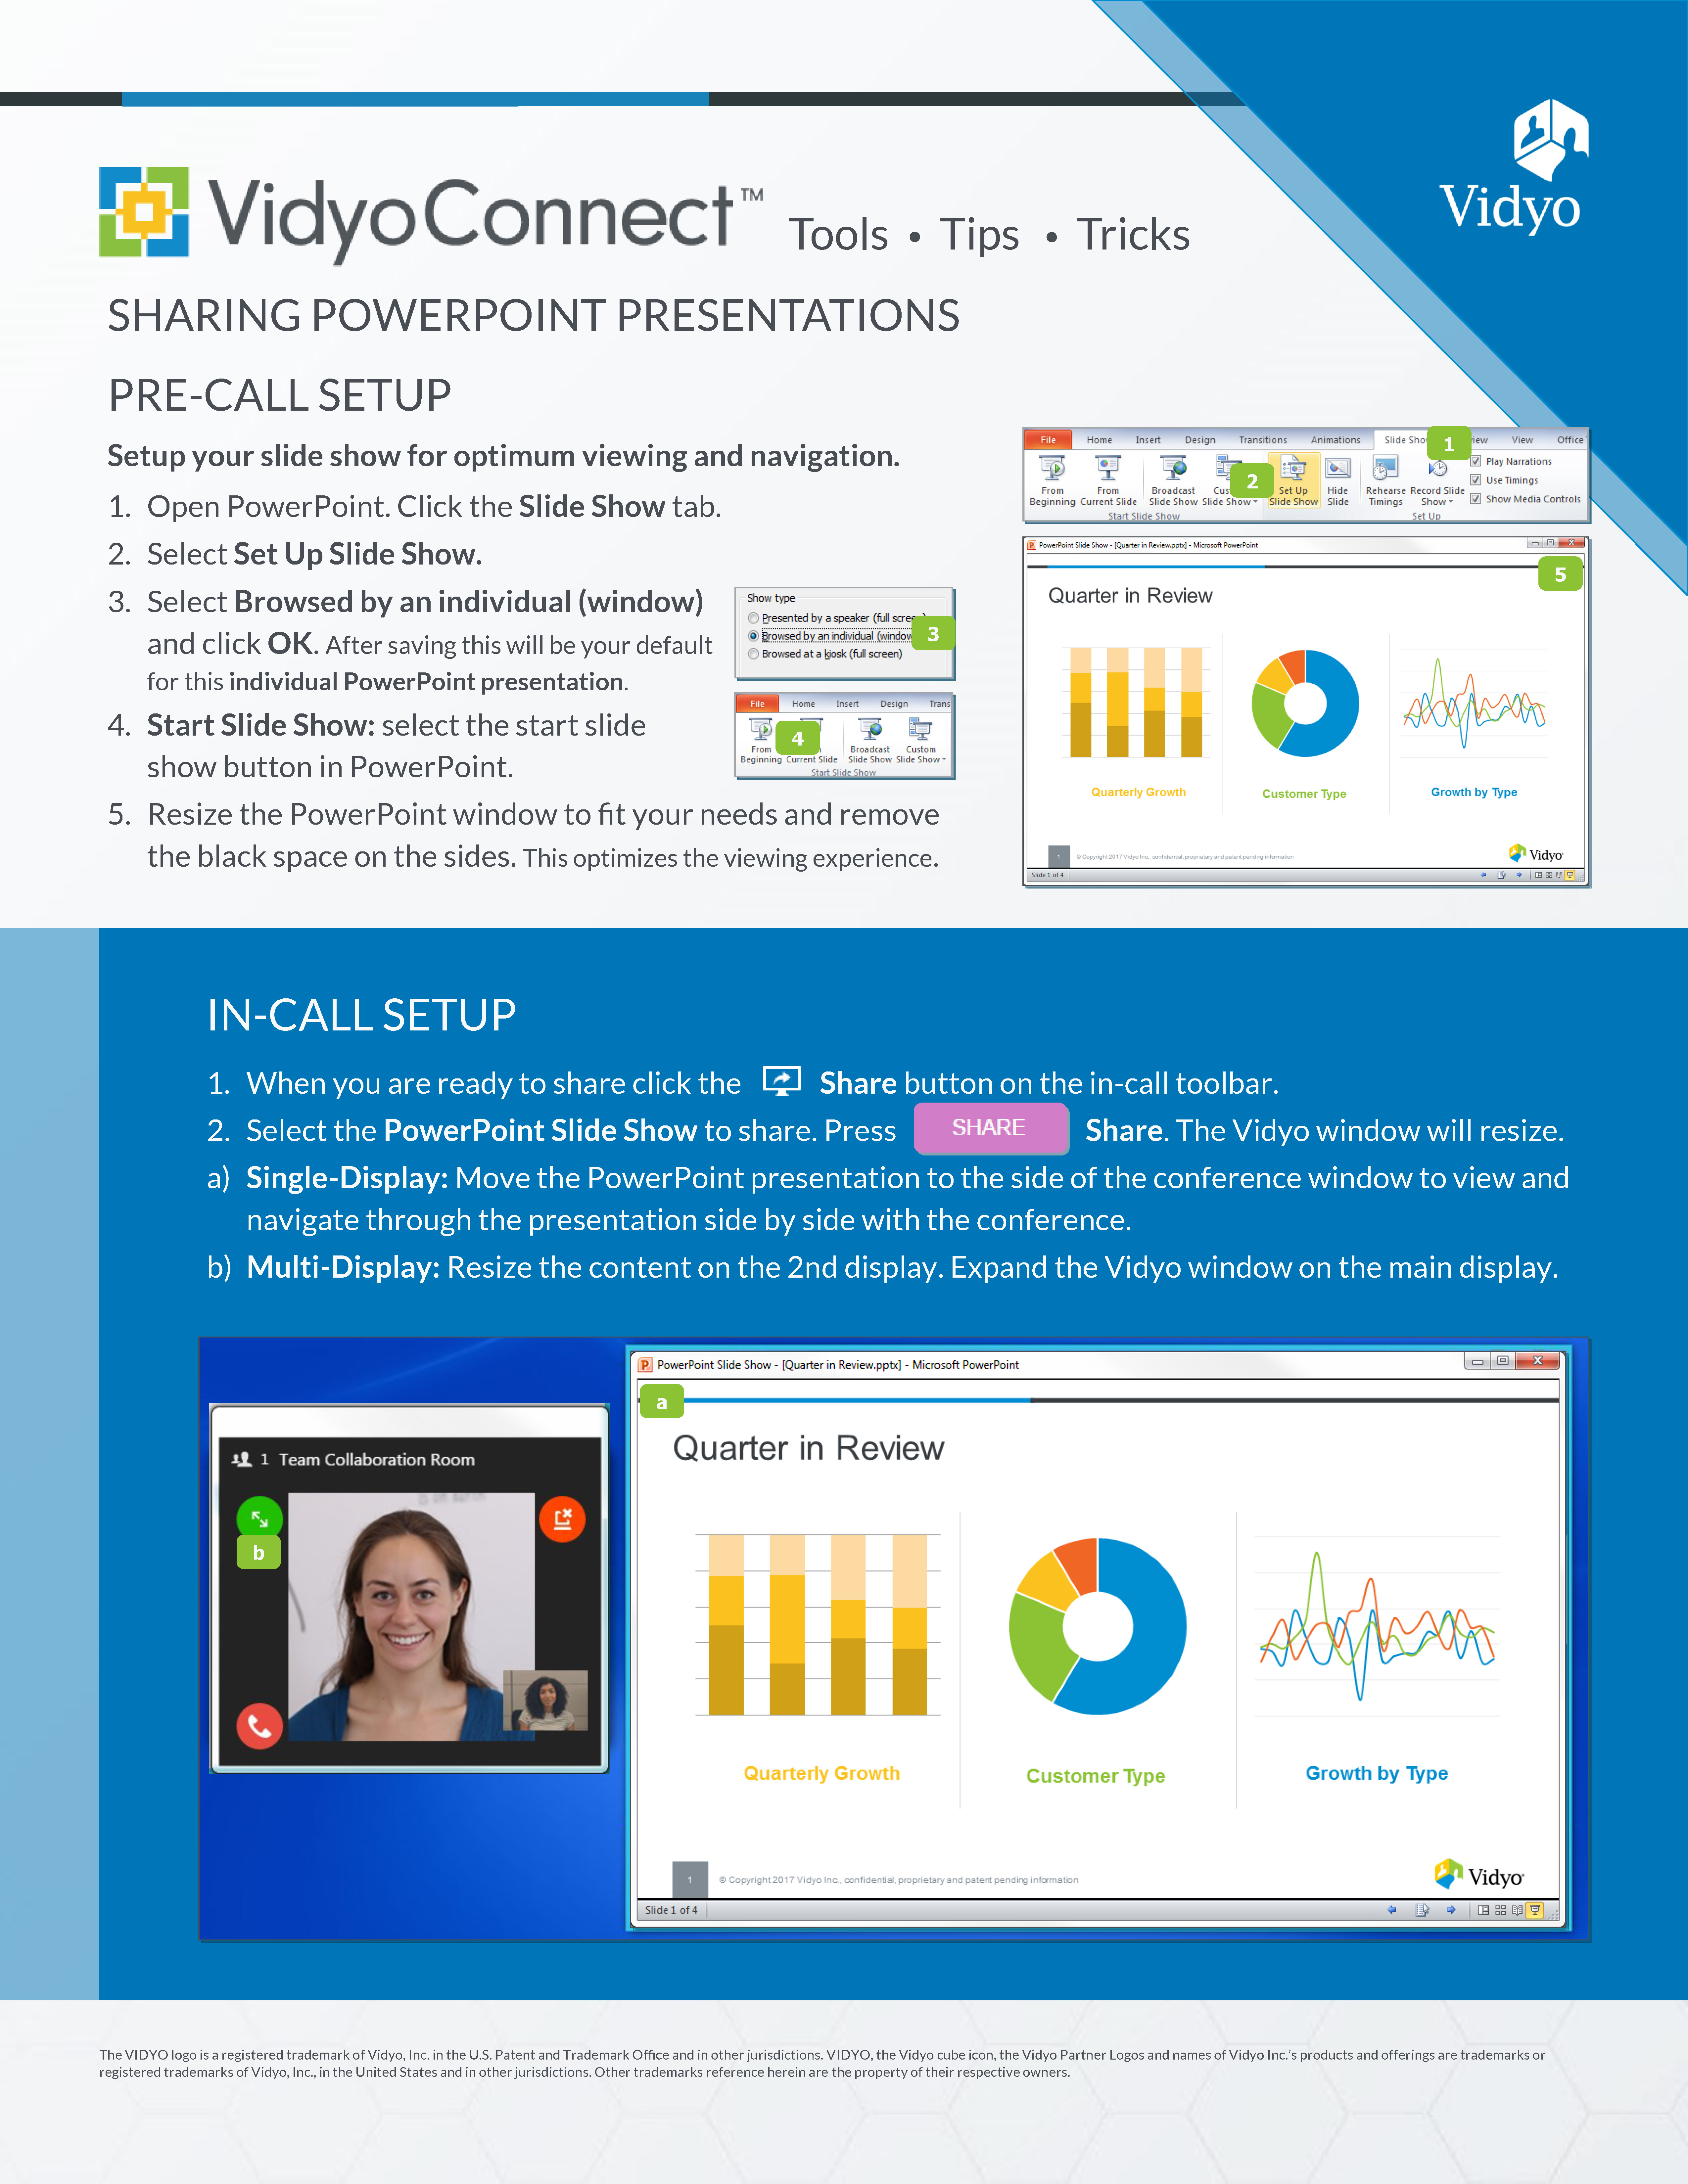 QRC_Sharing_PowerPoint_Presentations.jpg